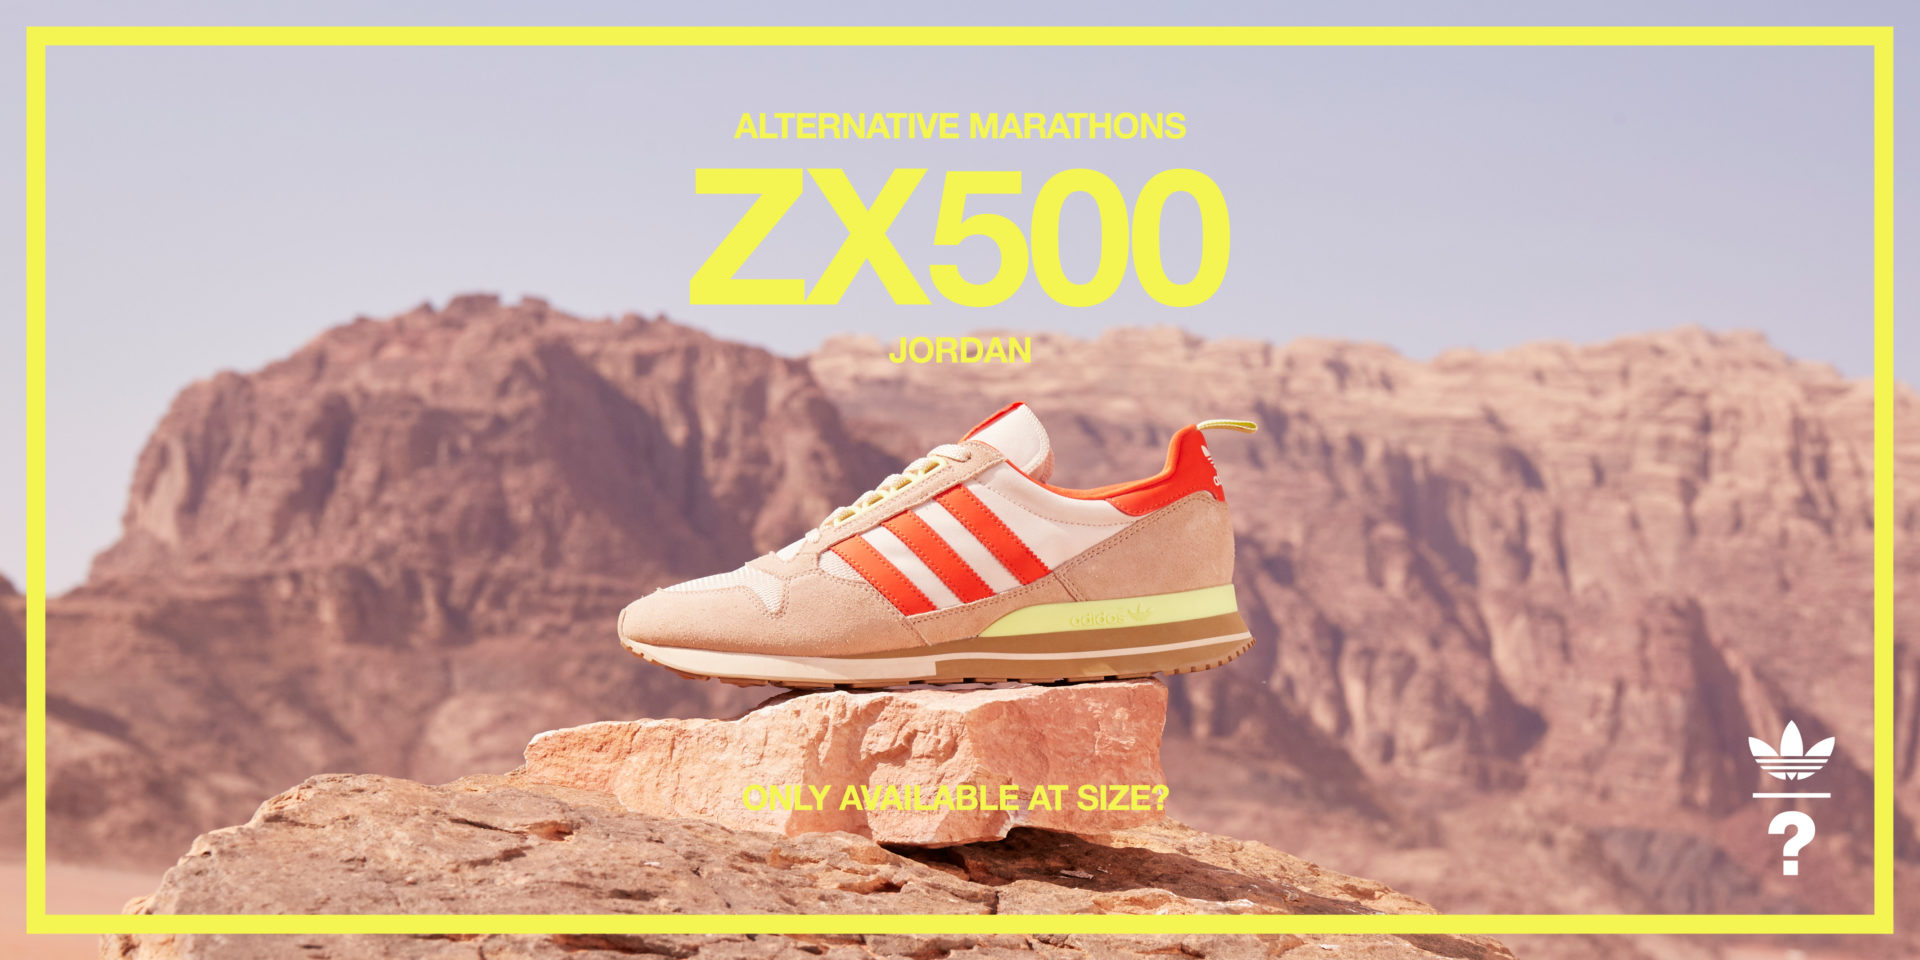 On the Run | adidas Originals ZX 500 'Jordan' – size? Exclusive